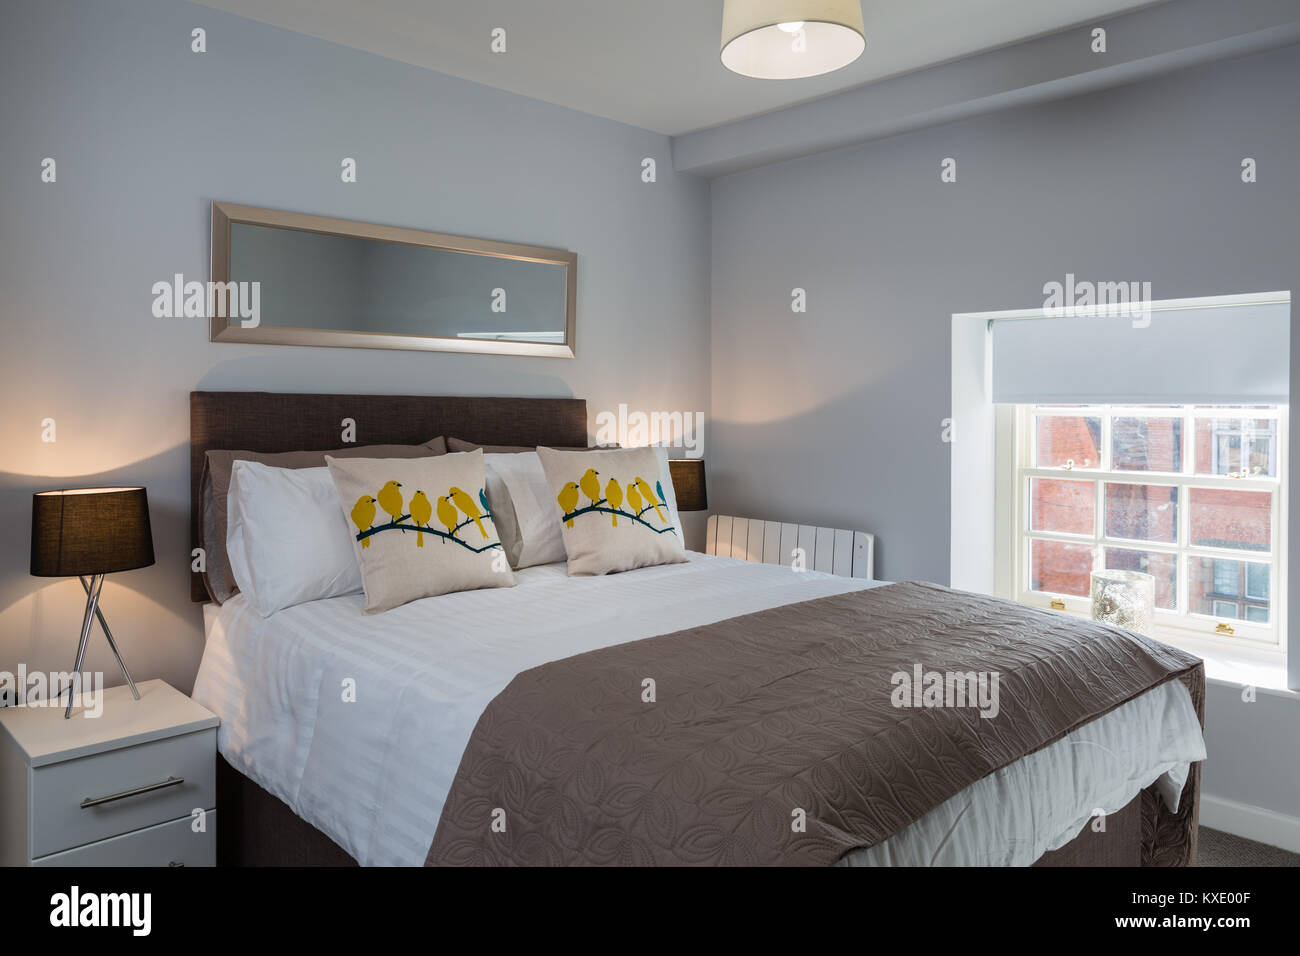 Master bedroom with large comfortable double bed and bedside cabinets with table lamps. - Stock Image